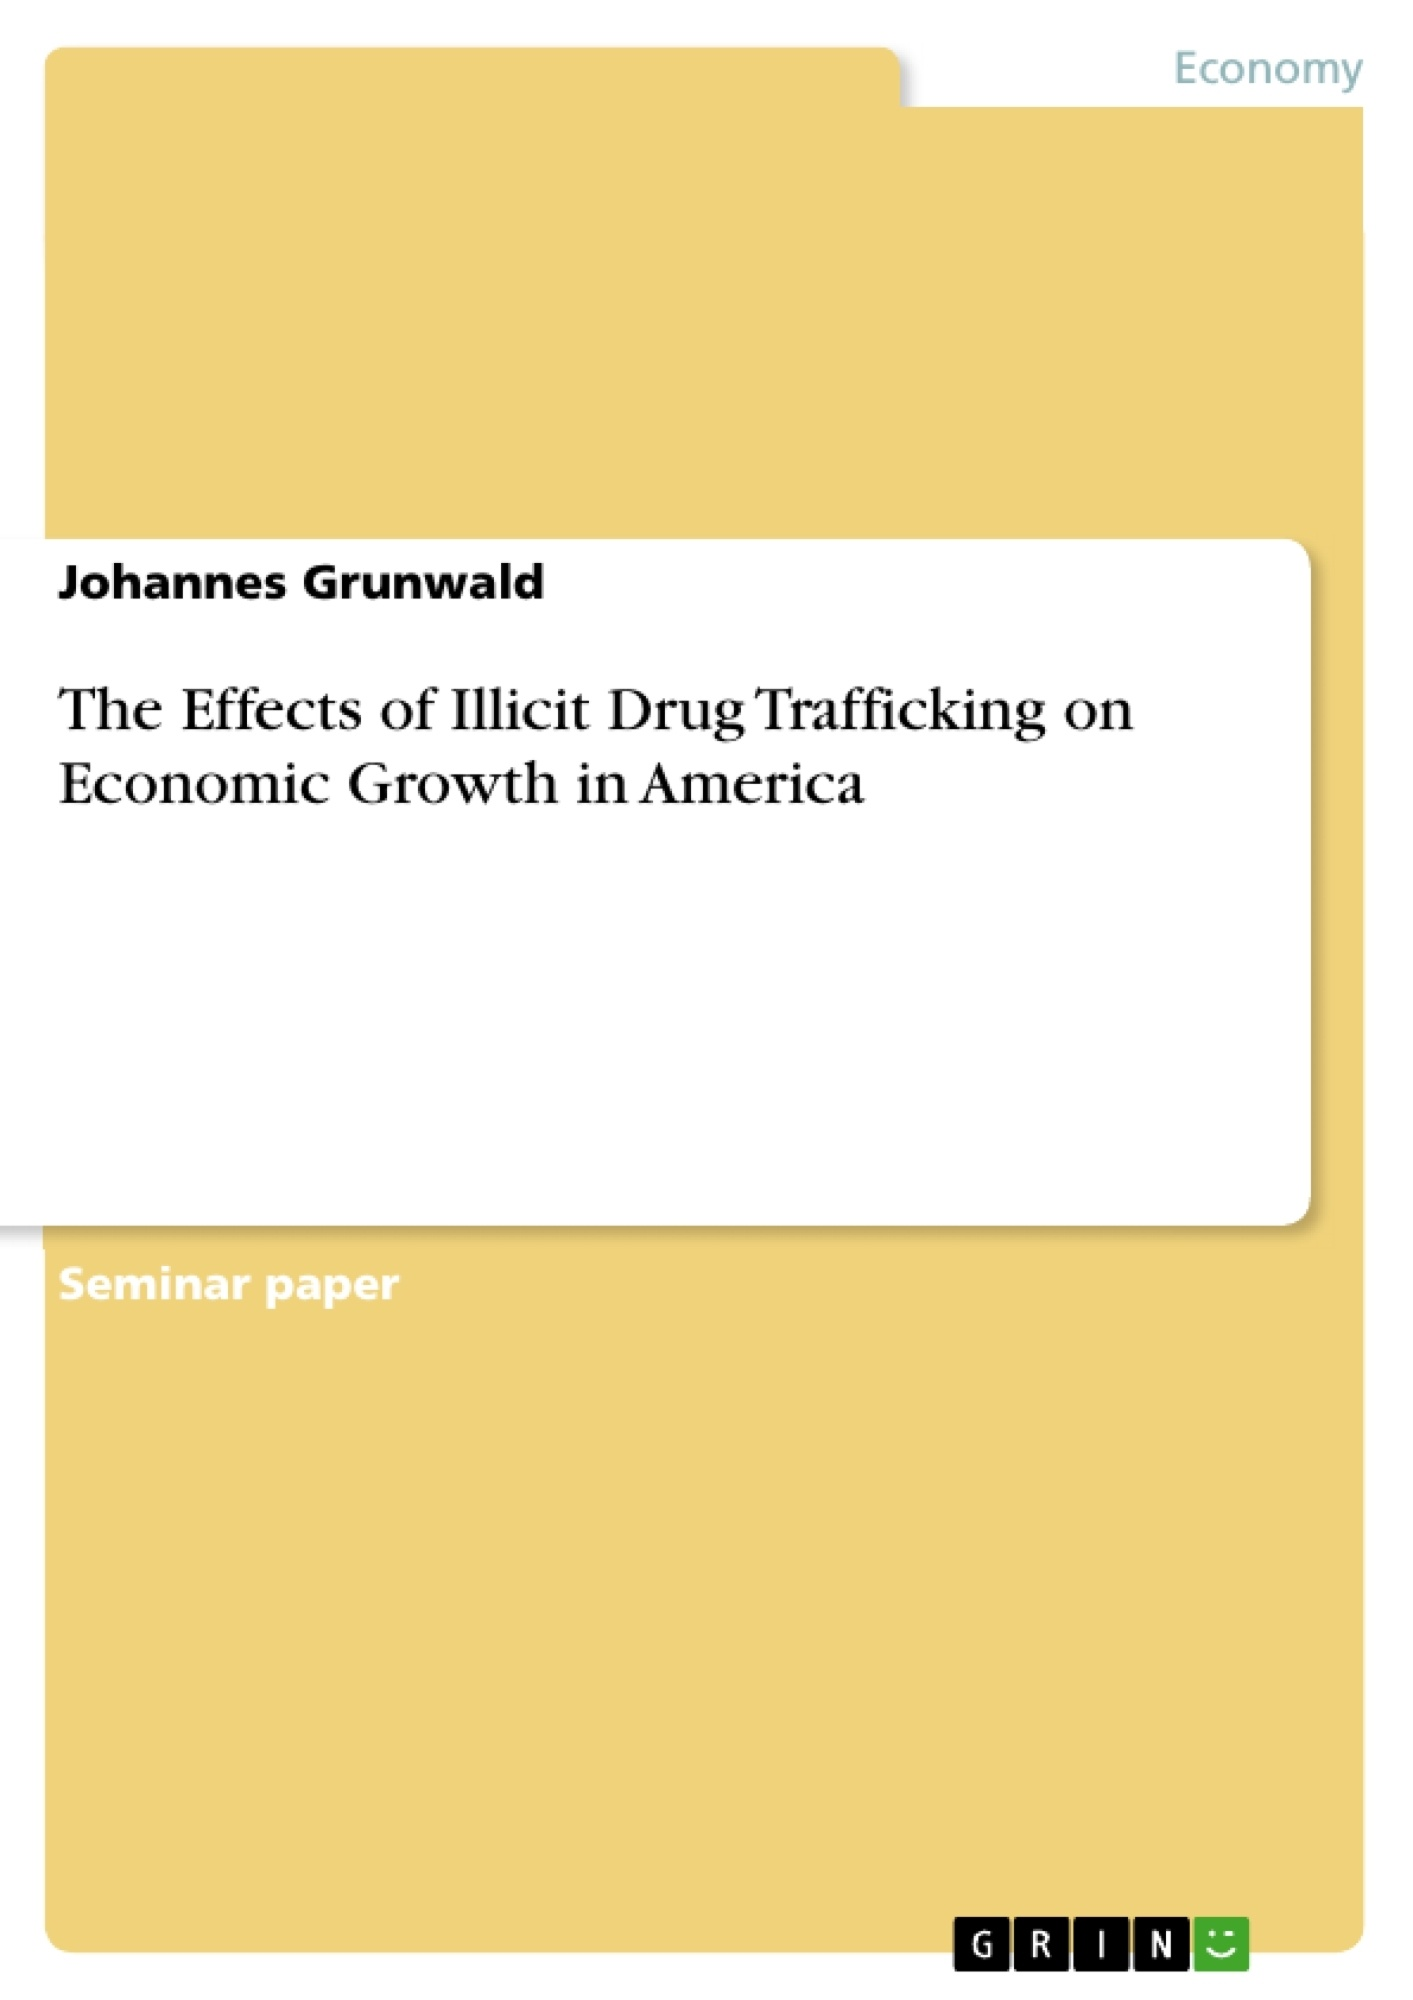 Title: The Effects of Illicit Drug Trafficking on Economic Growth in America